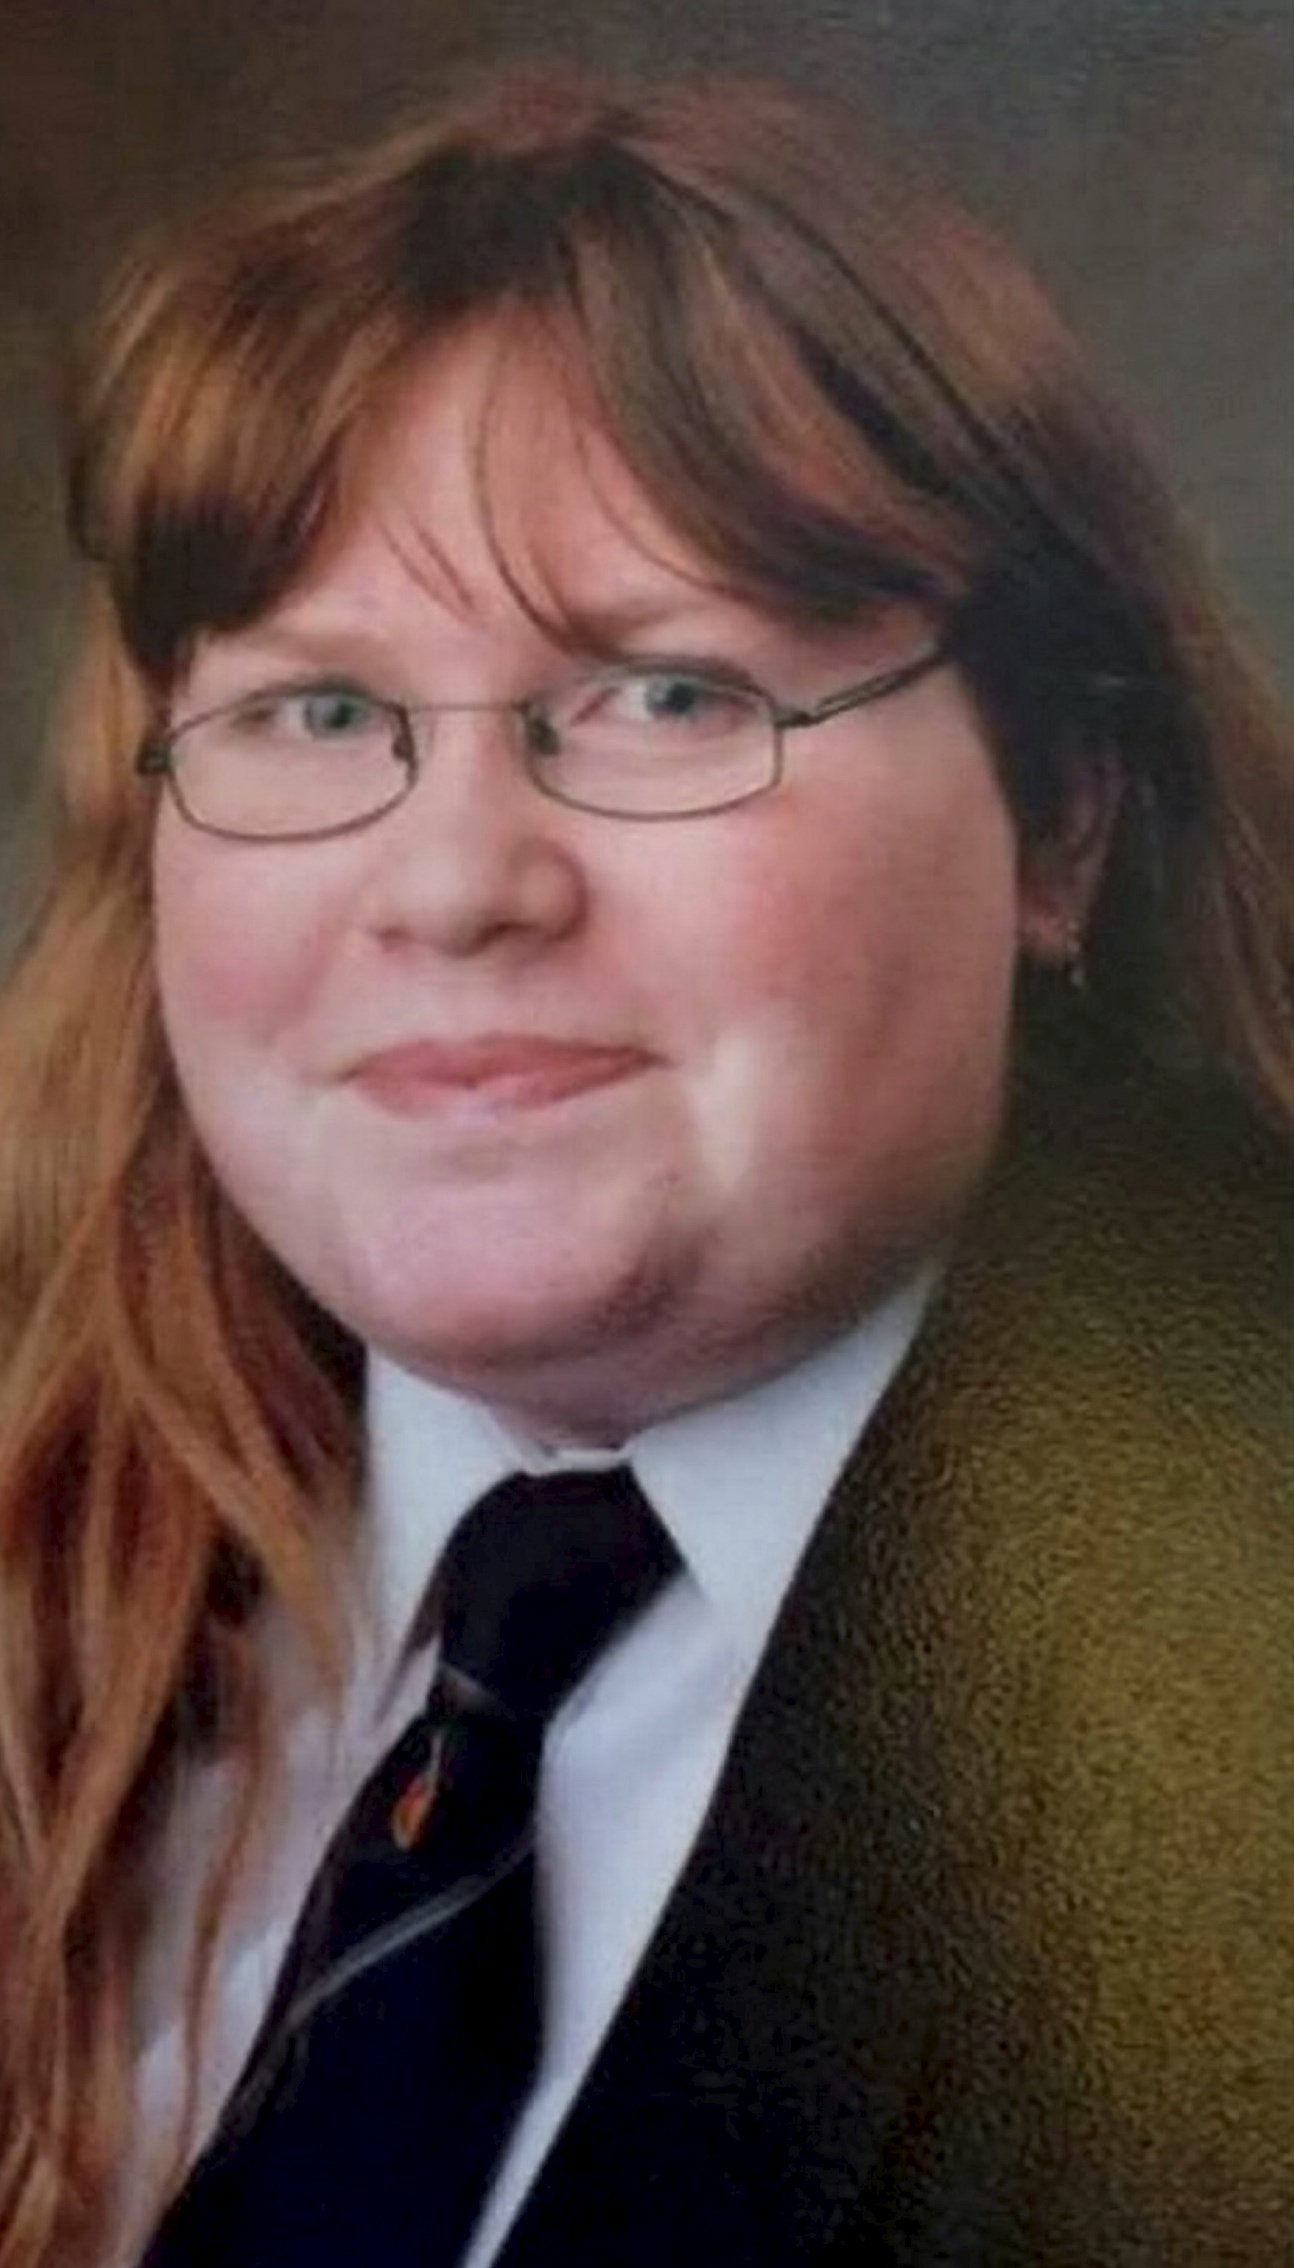 Woman Loses Half Her Bodyweight After Seeing School Photos Of Herself weight loss mum 80660